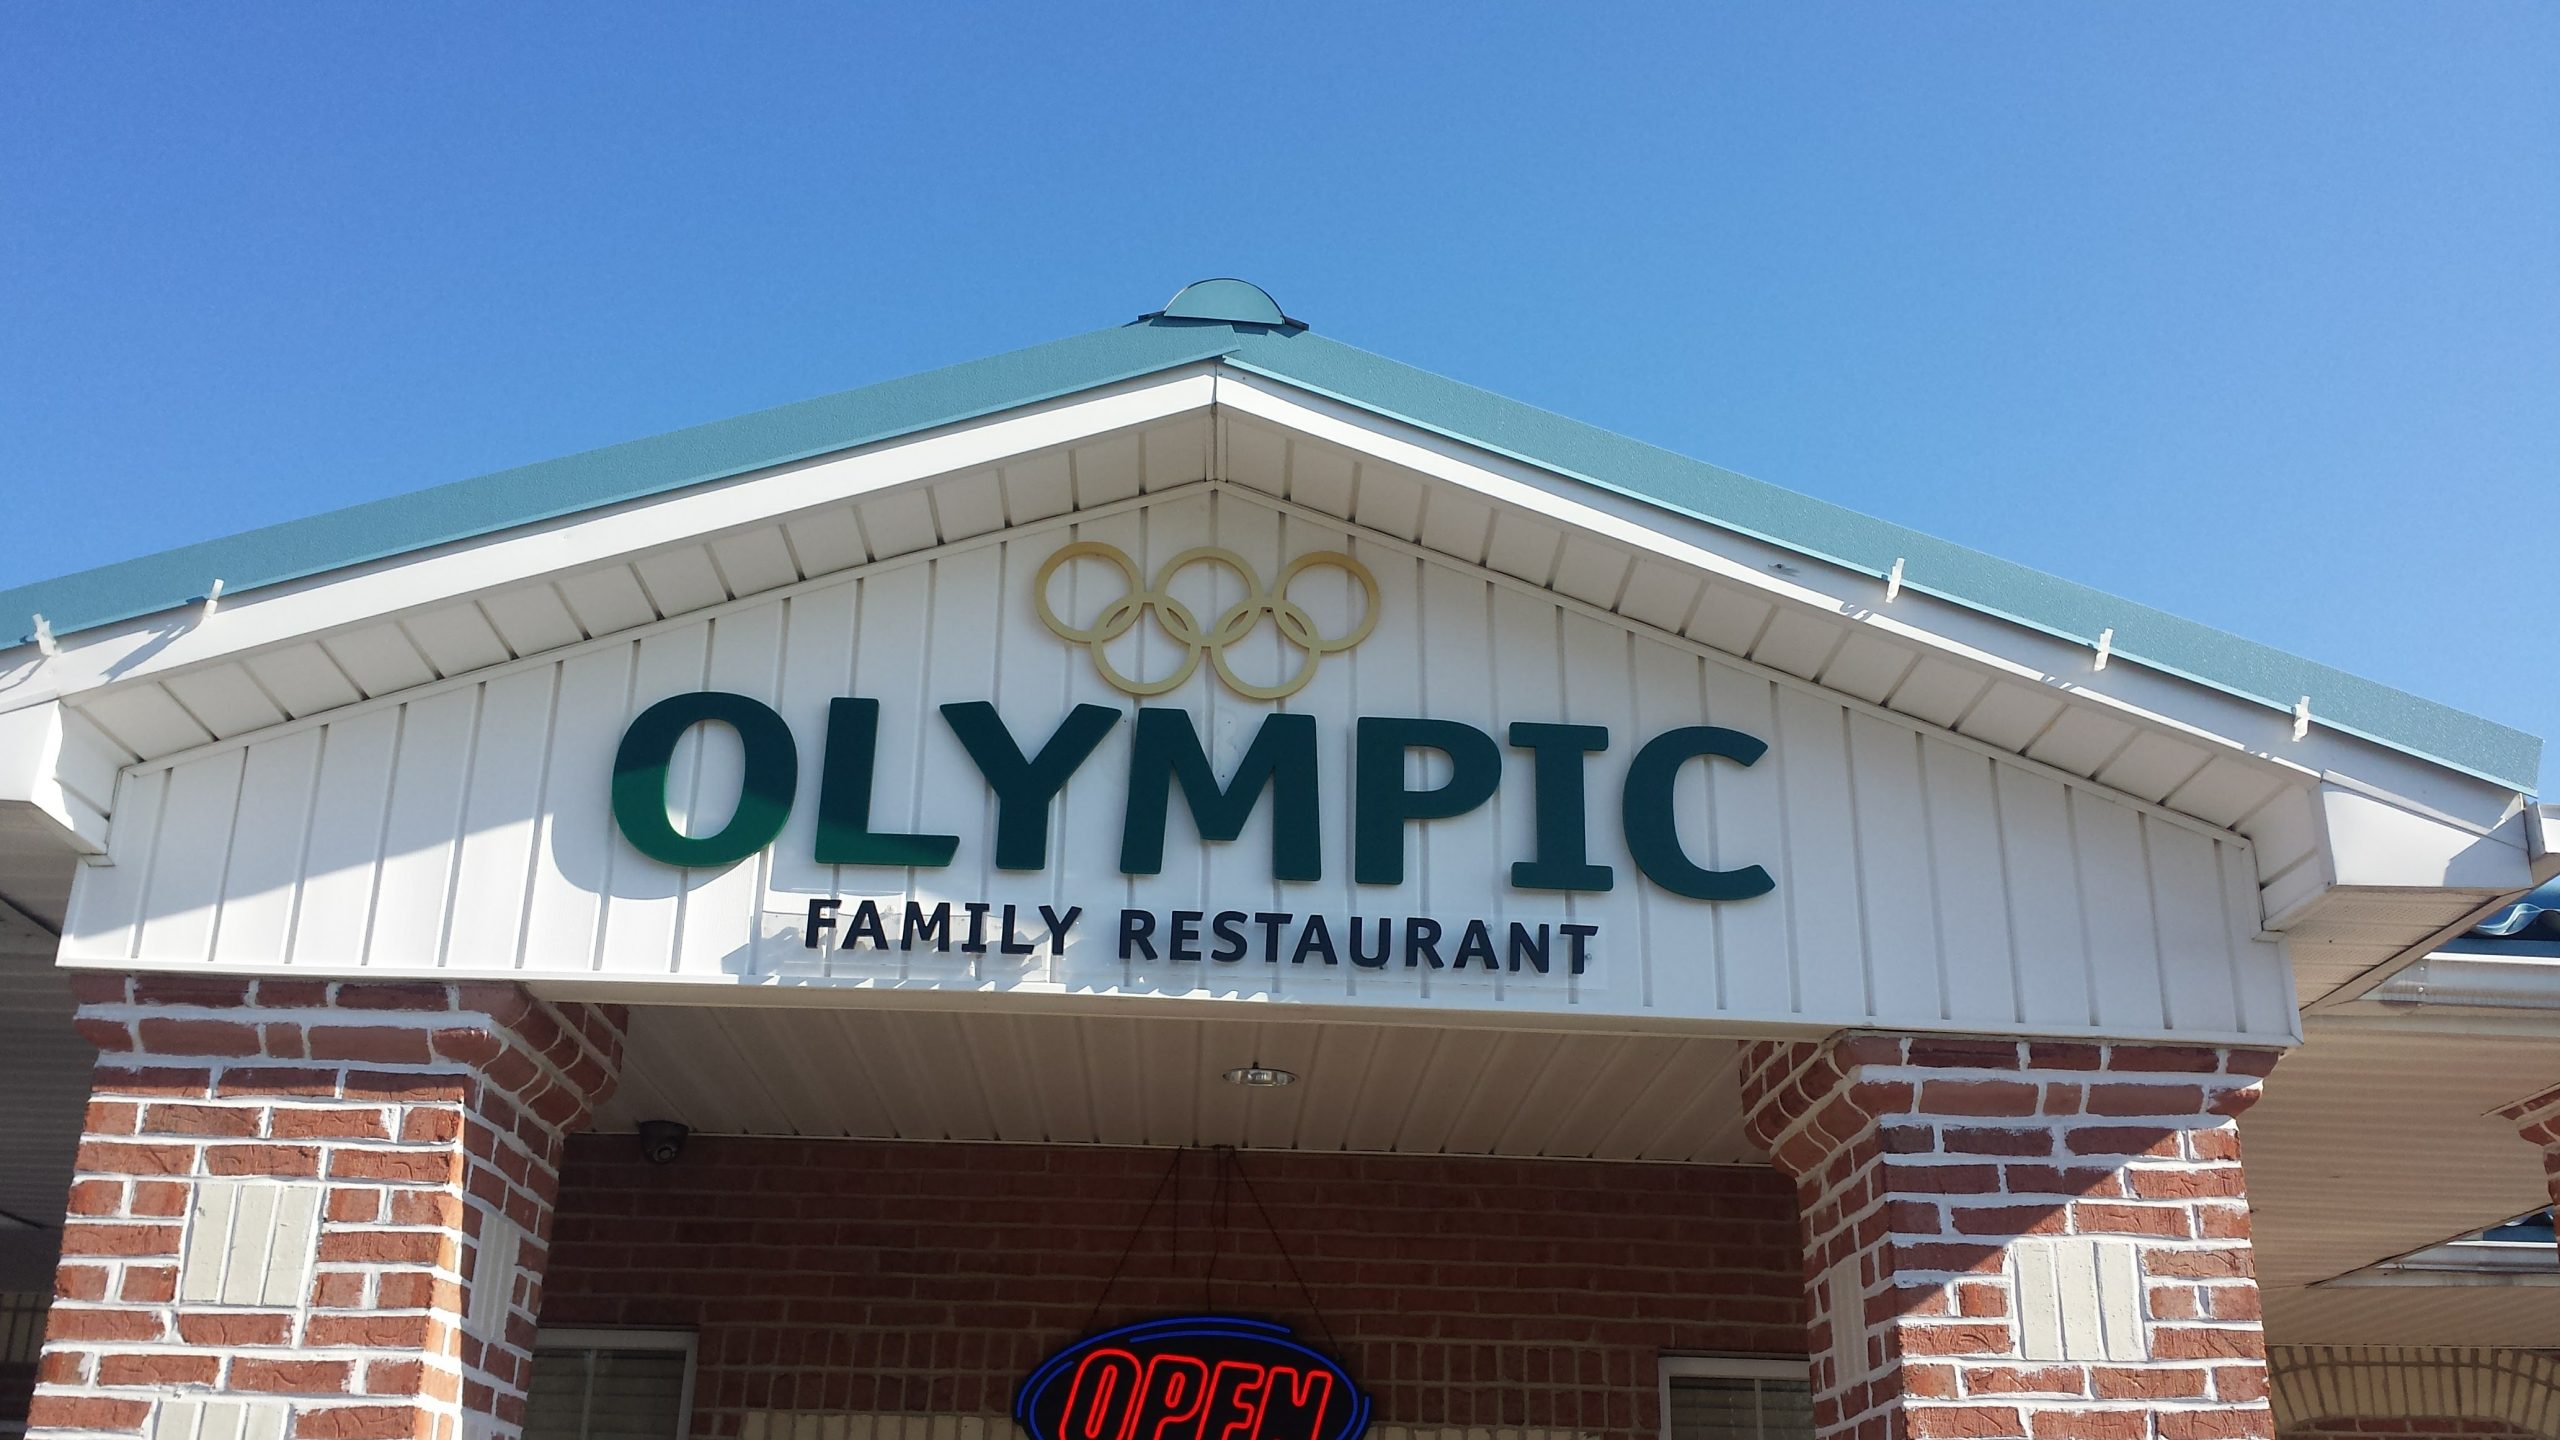 Olympic_family_restaurant_outddor_display_sign_01